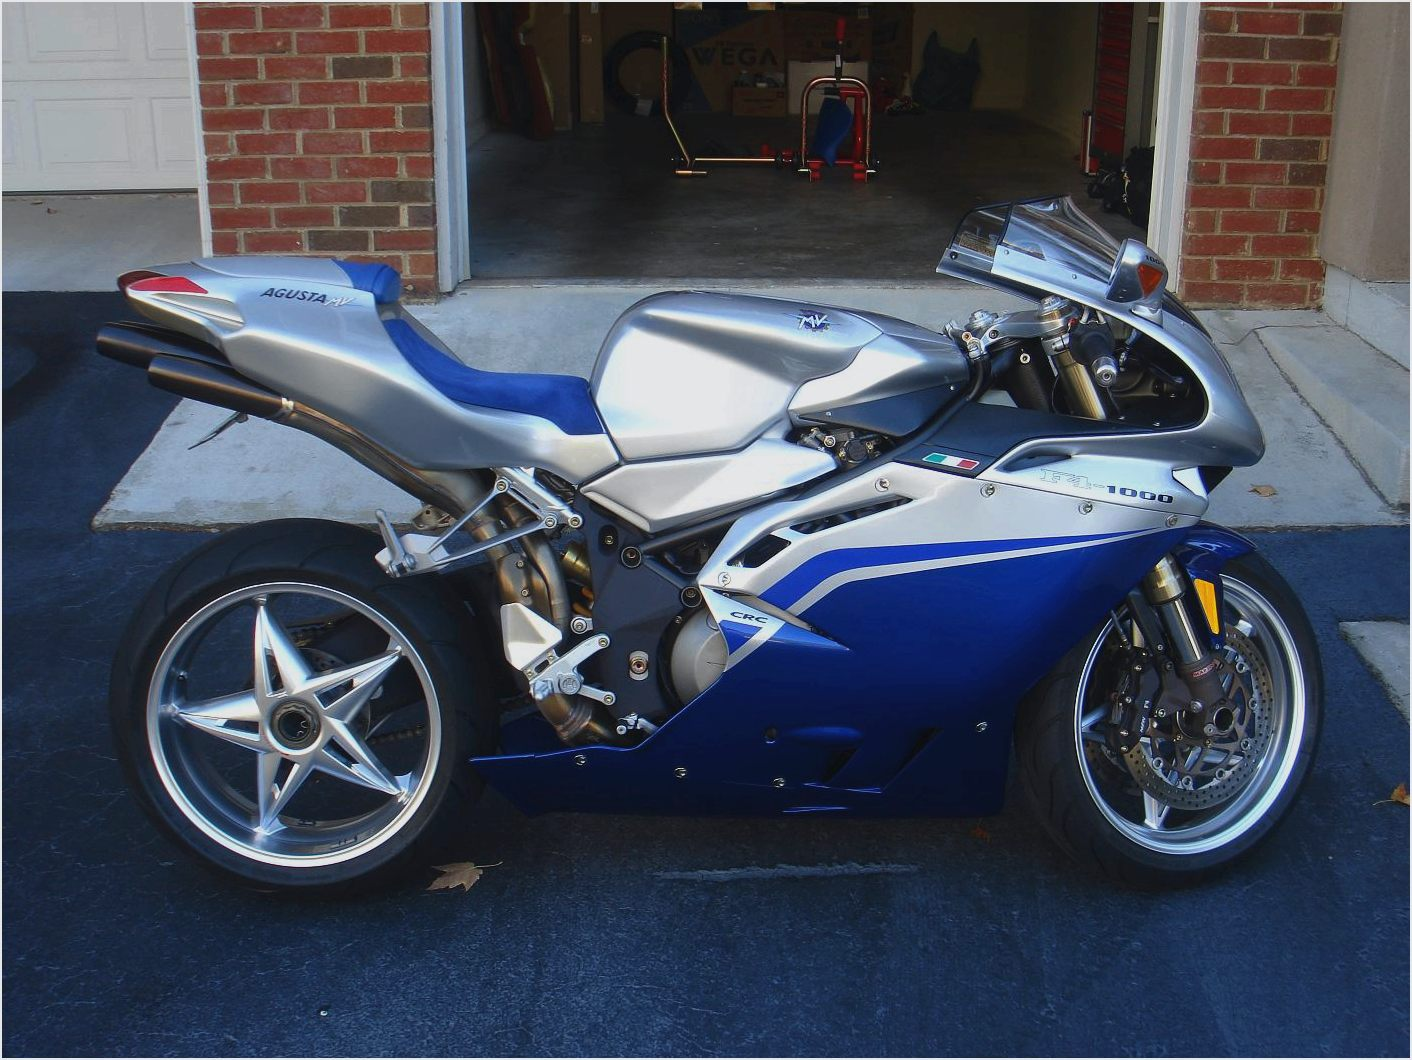 MV Agusta F4 1000 S 2006 images #113606